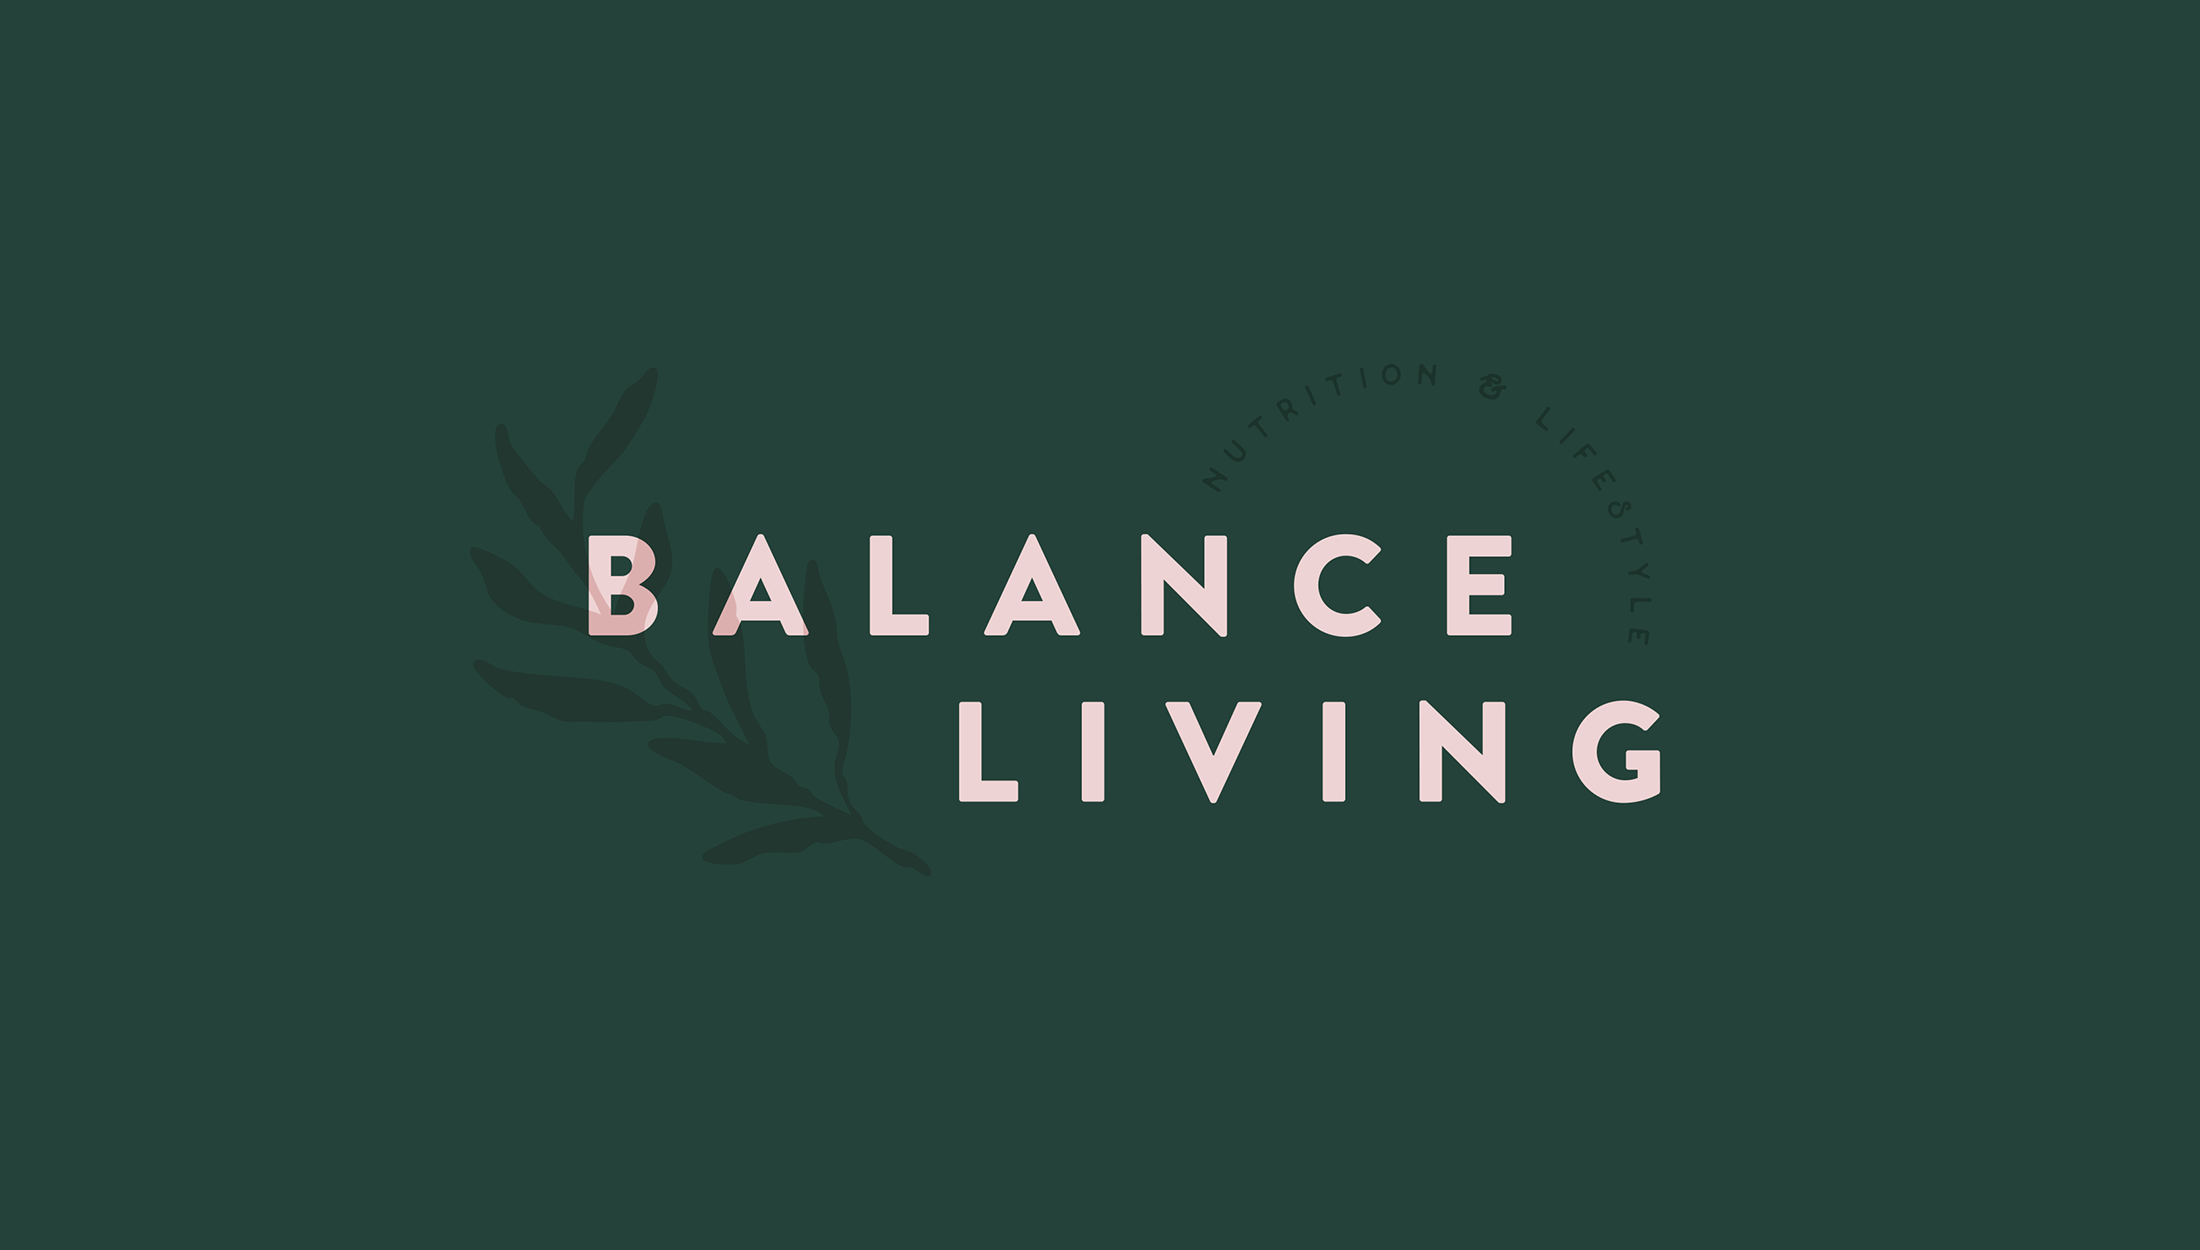 Final logo design for Balance Living, nutrition and lifestyle coaching - designed by Wiltshire-based graphic designer, Kaye Huett